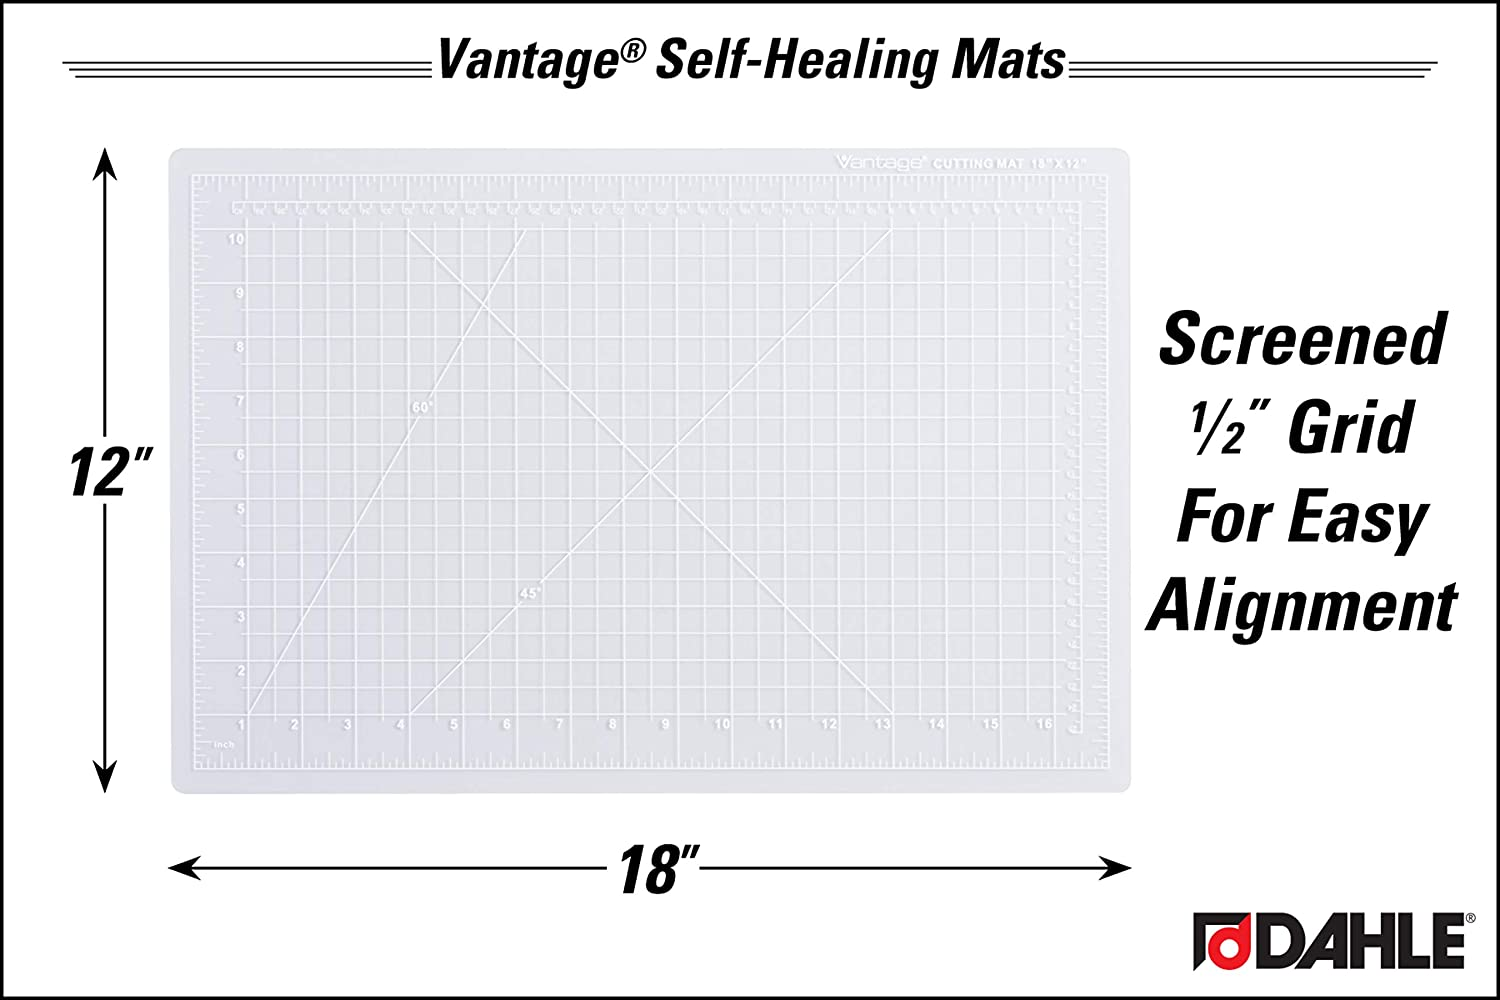 Dahle Vantage 10672 Self-Healing 5-Layer Cutting Mat Perfect for Crafts and Sewing 24 x 18 Black Mat